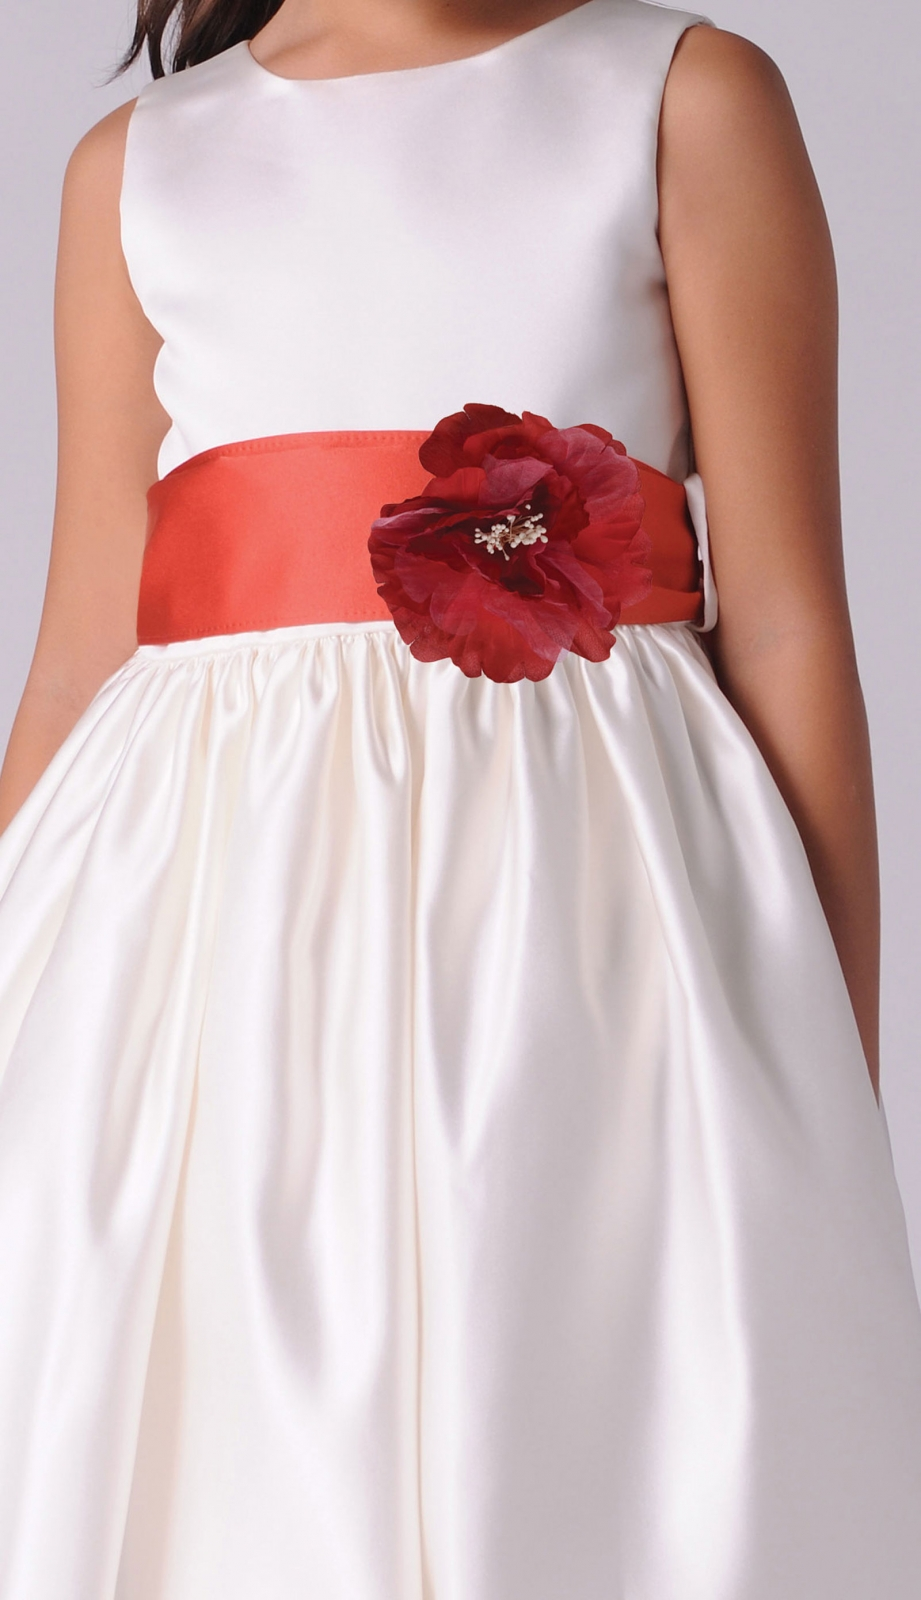 UA_702 - Us Angels Flower Girl Dress- Style 702- Build Your Own ...